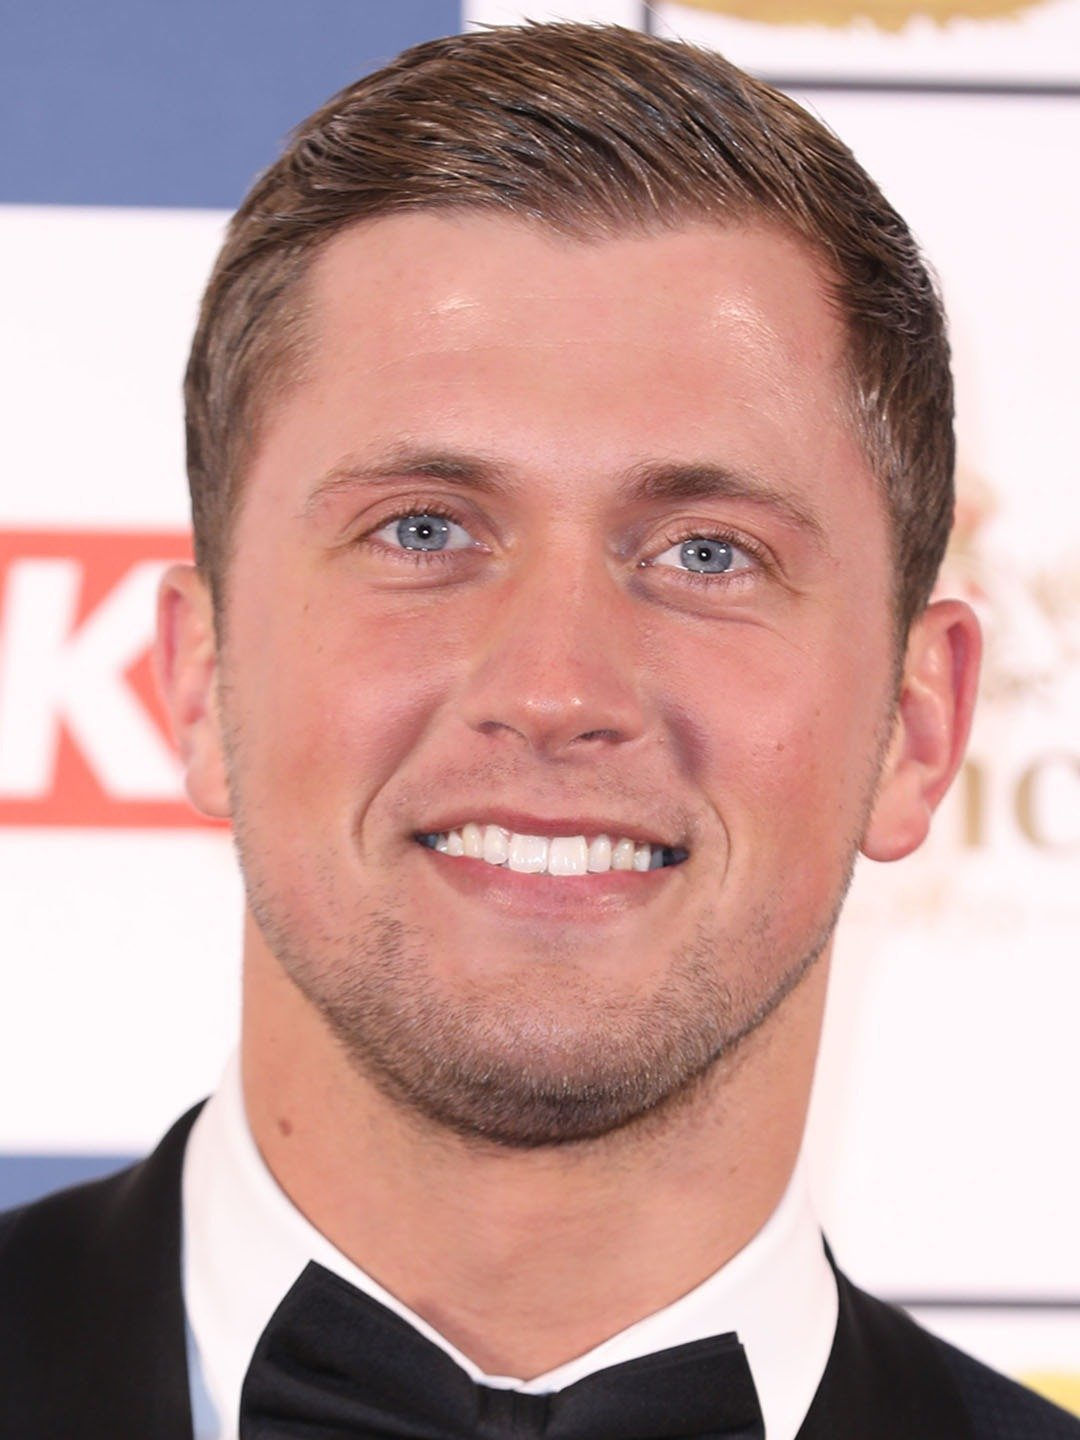 Mandatory Credit: Photo by James Shaw/REX/Shutterstock (9247134w) Dan Osborne The Beauty Awards with OK!, London, UK - 28 Nov 2017